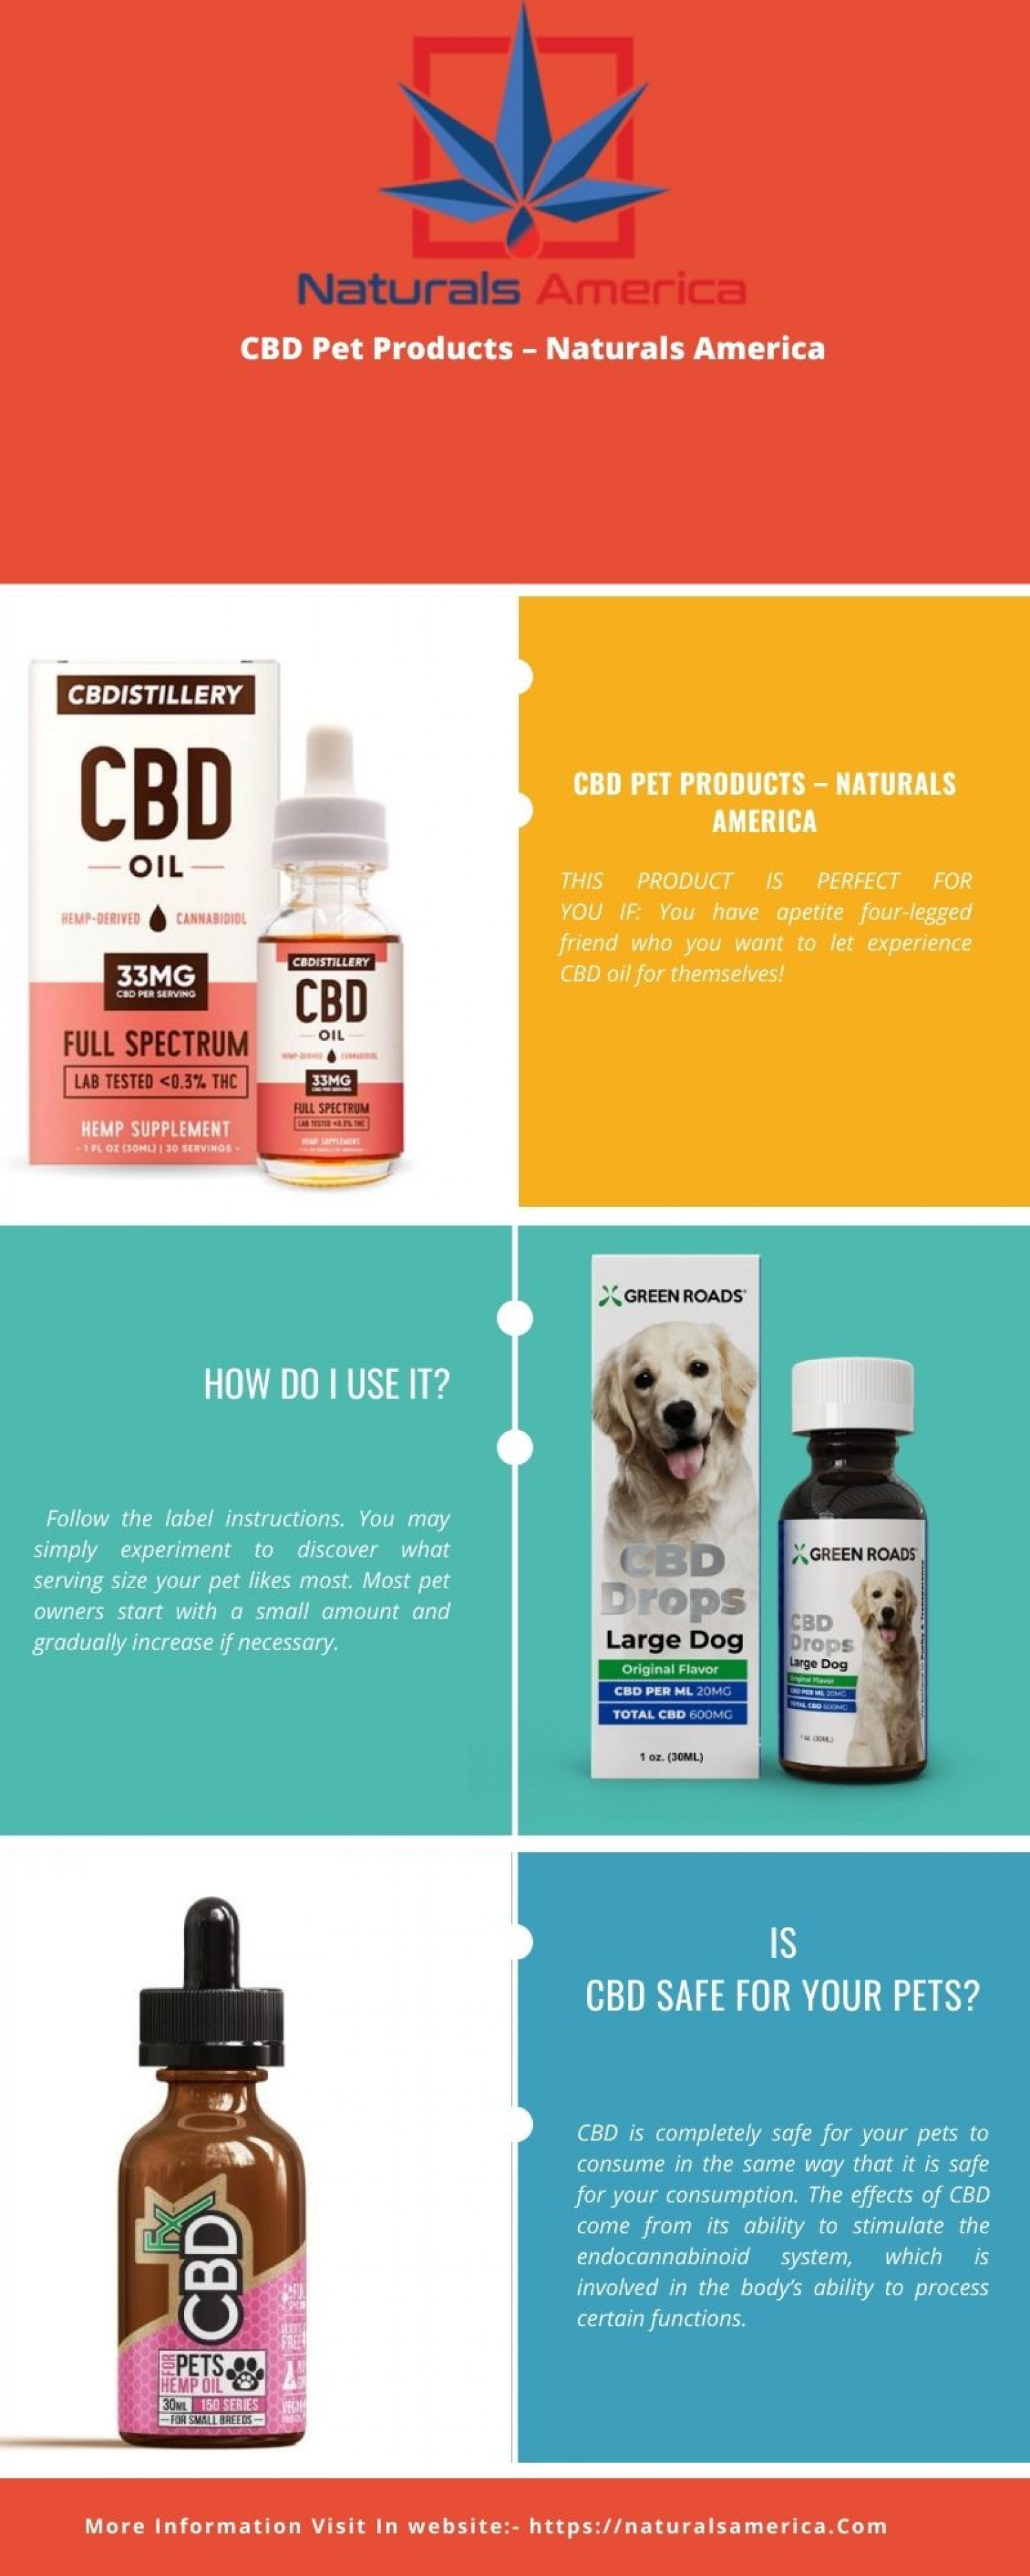 CBD Pet Products - naturalsamerica Infographic